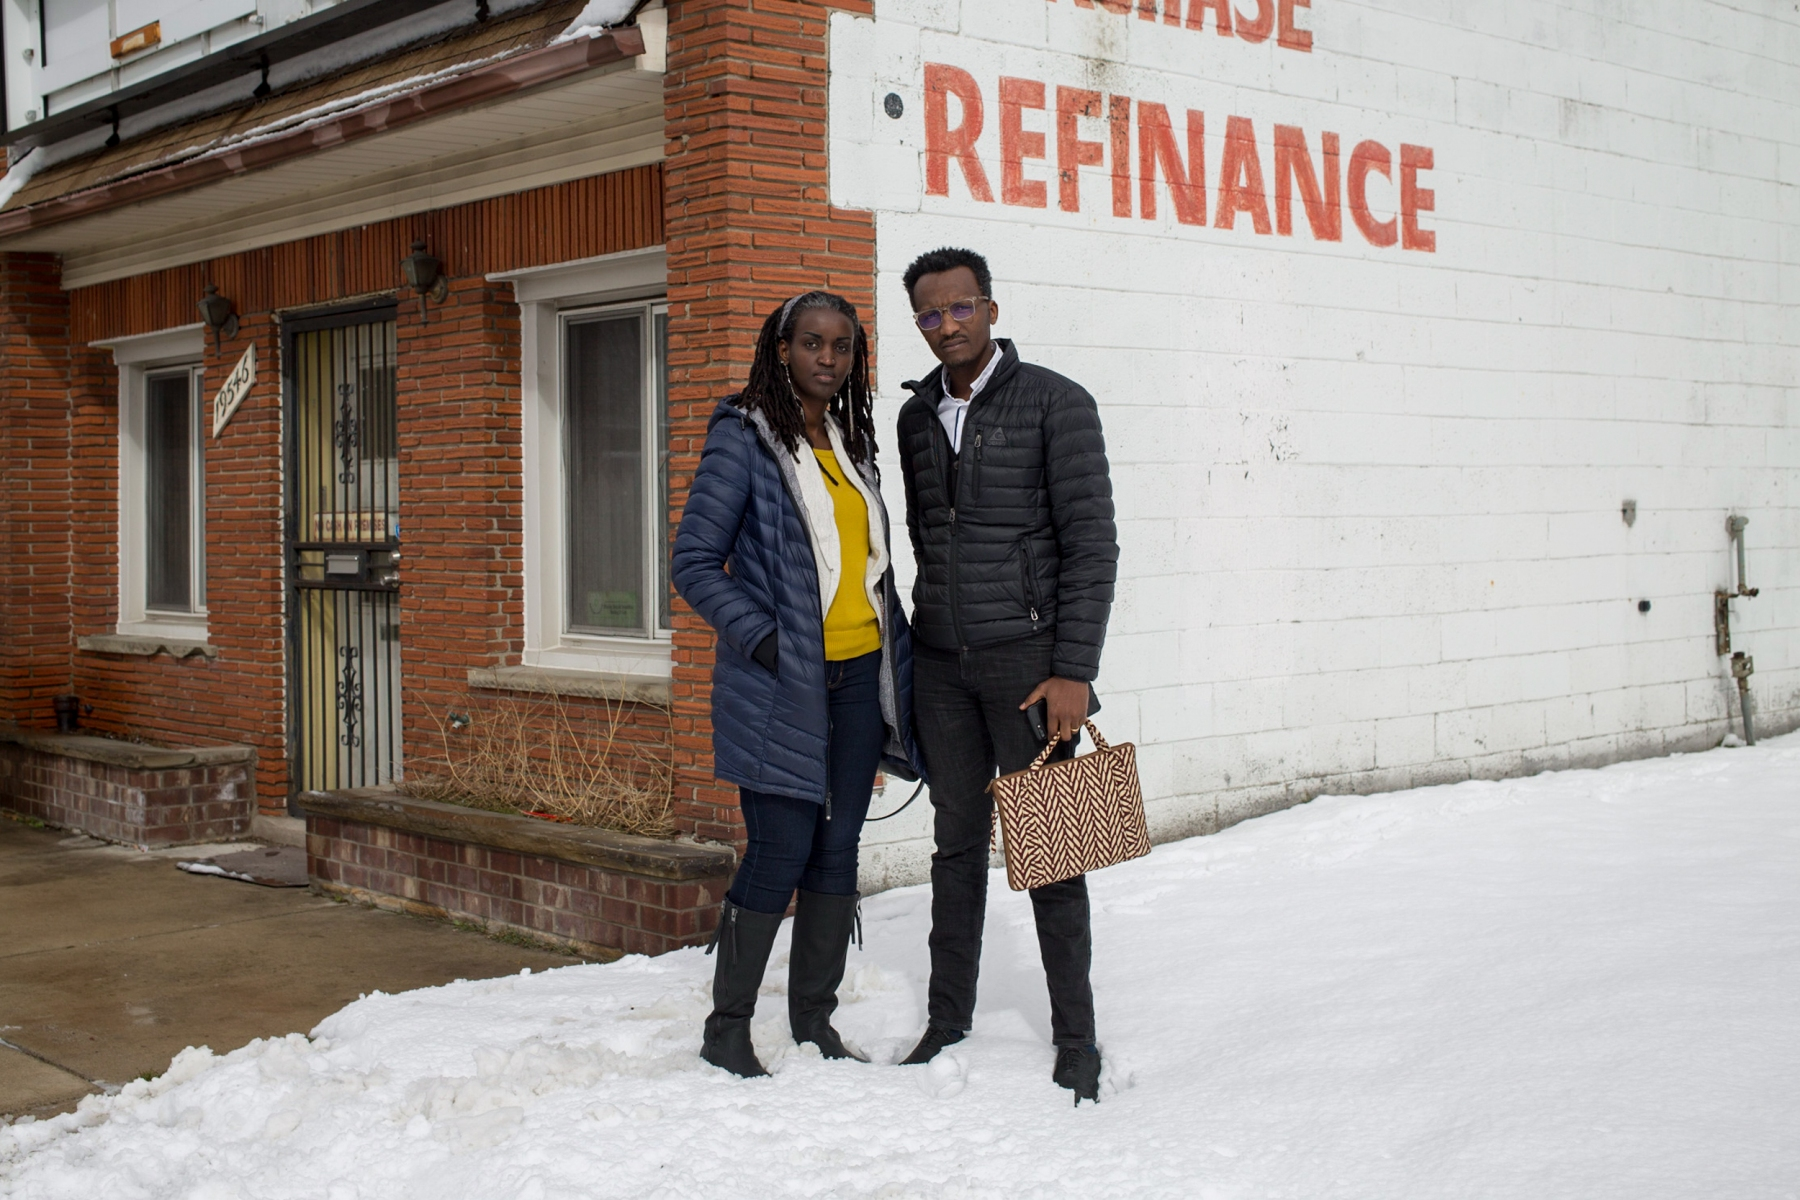 Mamba and Nadia stand on Grand River Avenue after Mamba gave a presentation about small business ownership to community members on March 2, 2018. Mamba and Nadia were eventually granted asylum in April 2017, four years after Nadia applied. Less than six months later, they won a $50,000 grant to open Detroit's first East African restaurant, Baobob Fare.